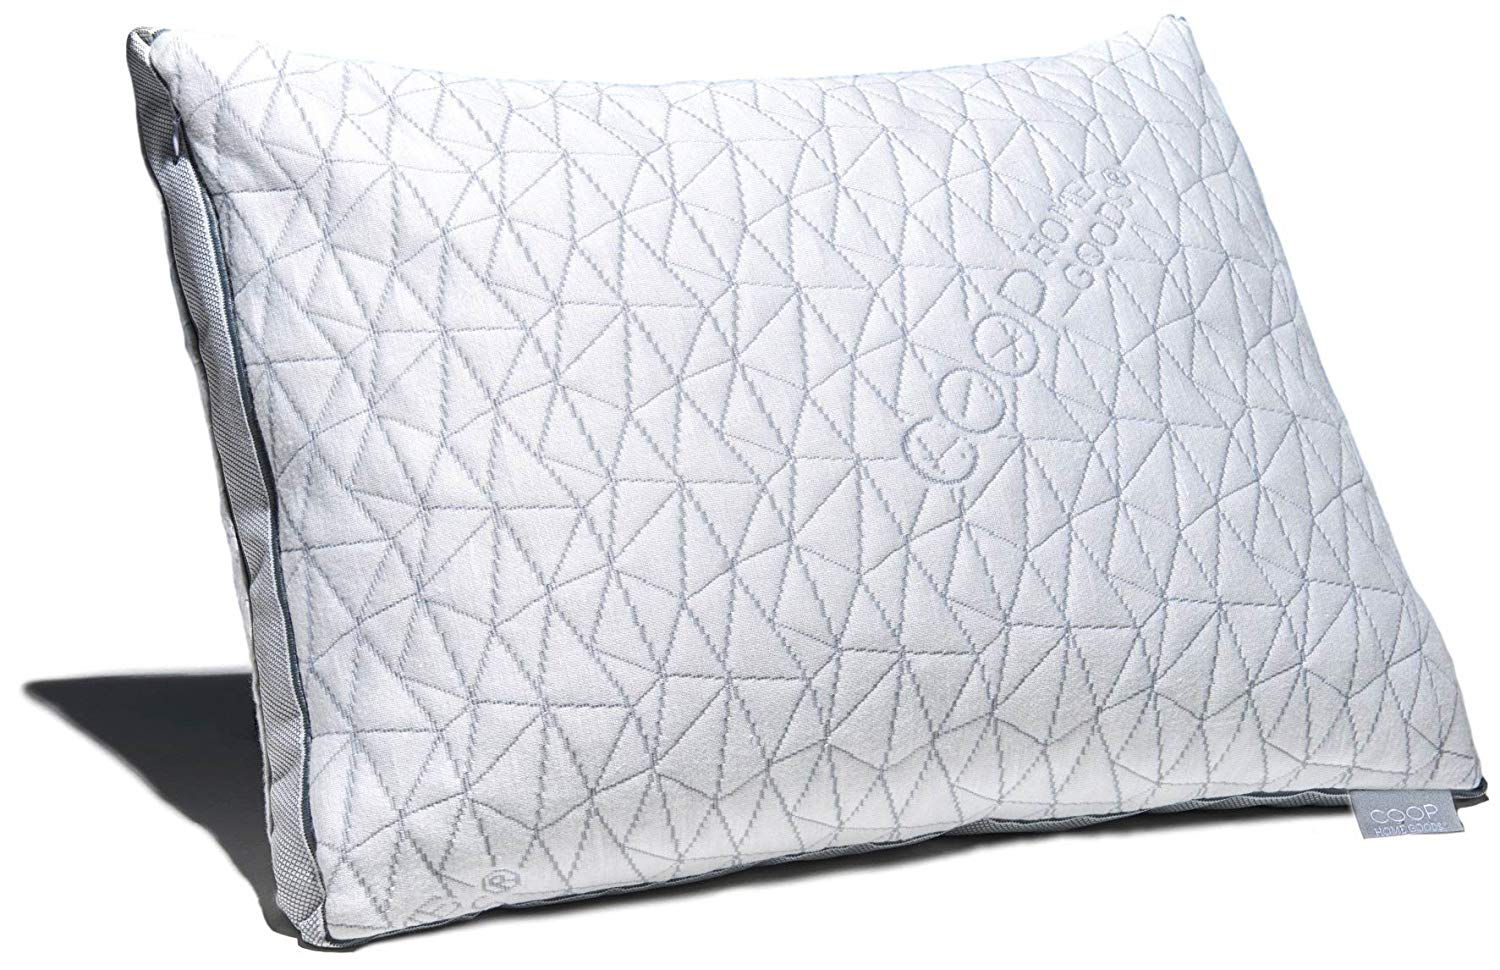 Coop Home Goods Best Pillow For Back Sleepers Review by www.snoremagazine.com